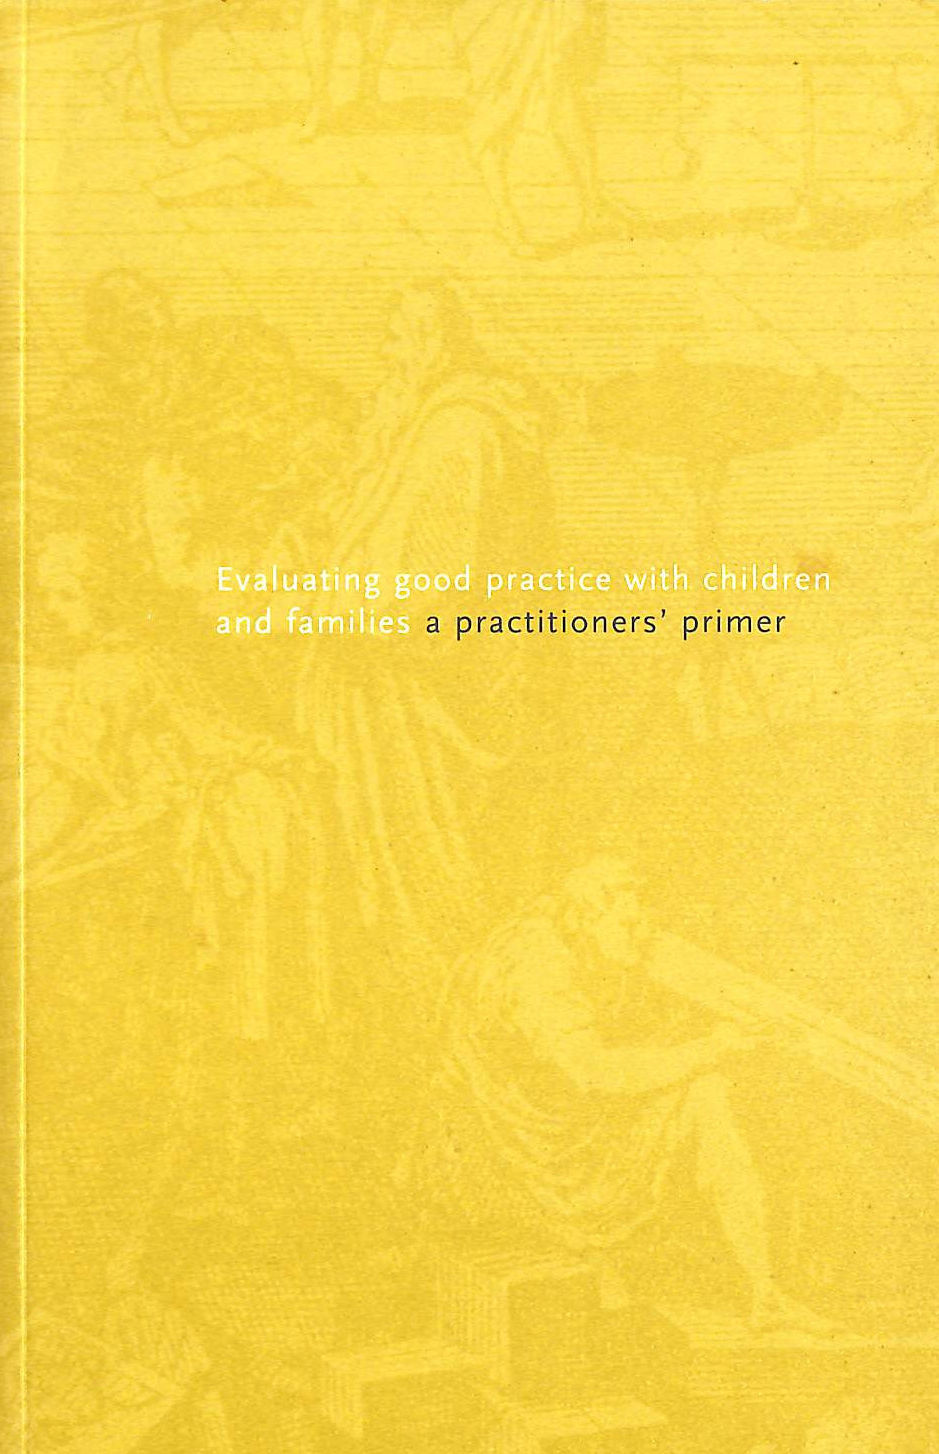 Image for Evaluating Good Practice with Children, a practioner's primer